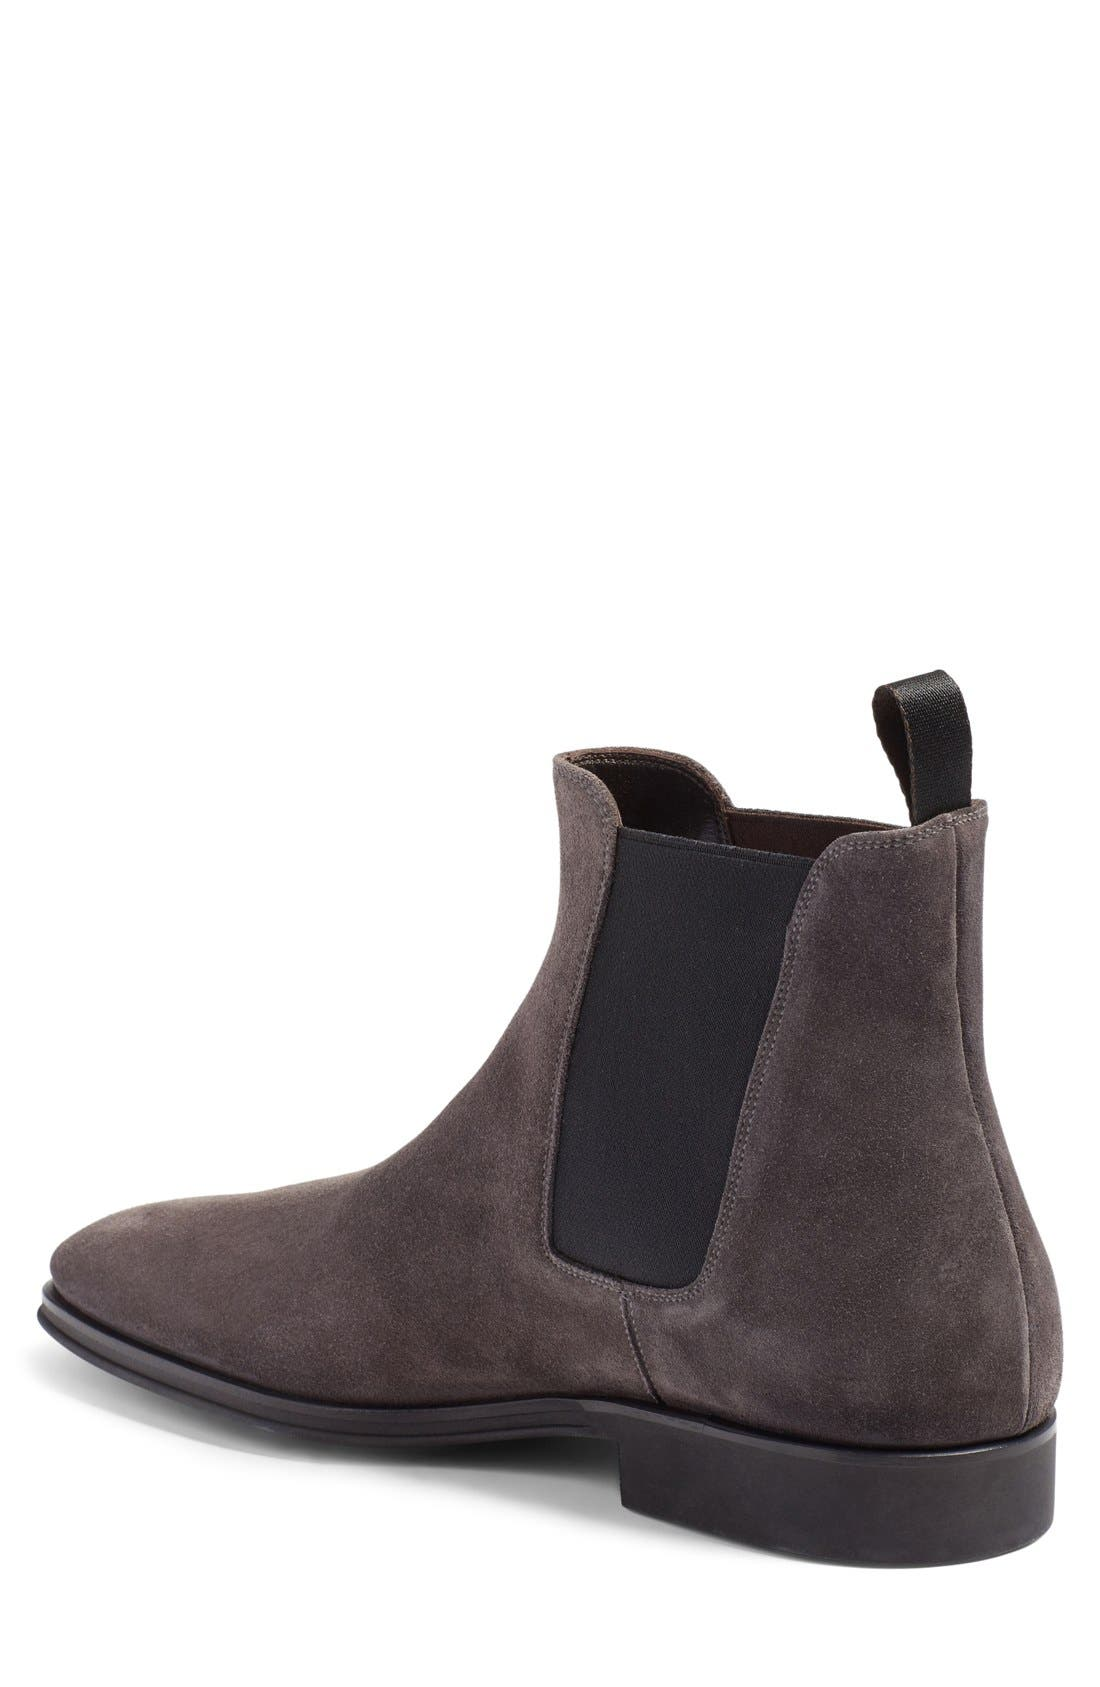 Enrico Chelsea Boot,                             Alternate thumbnail 2, color,                             Grey Suede